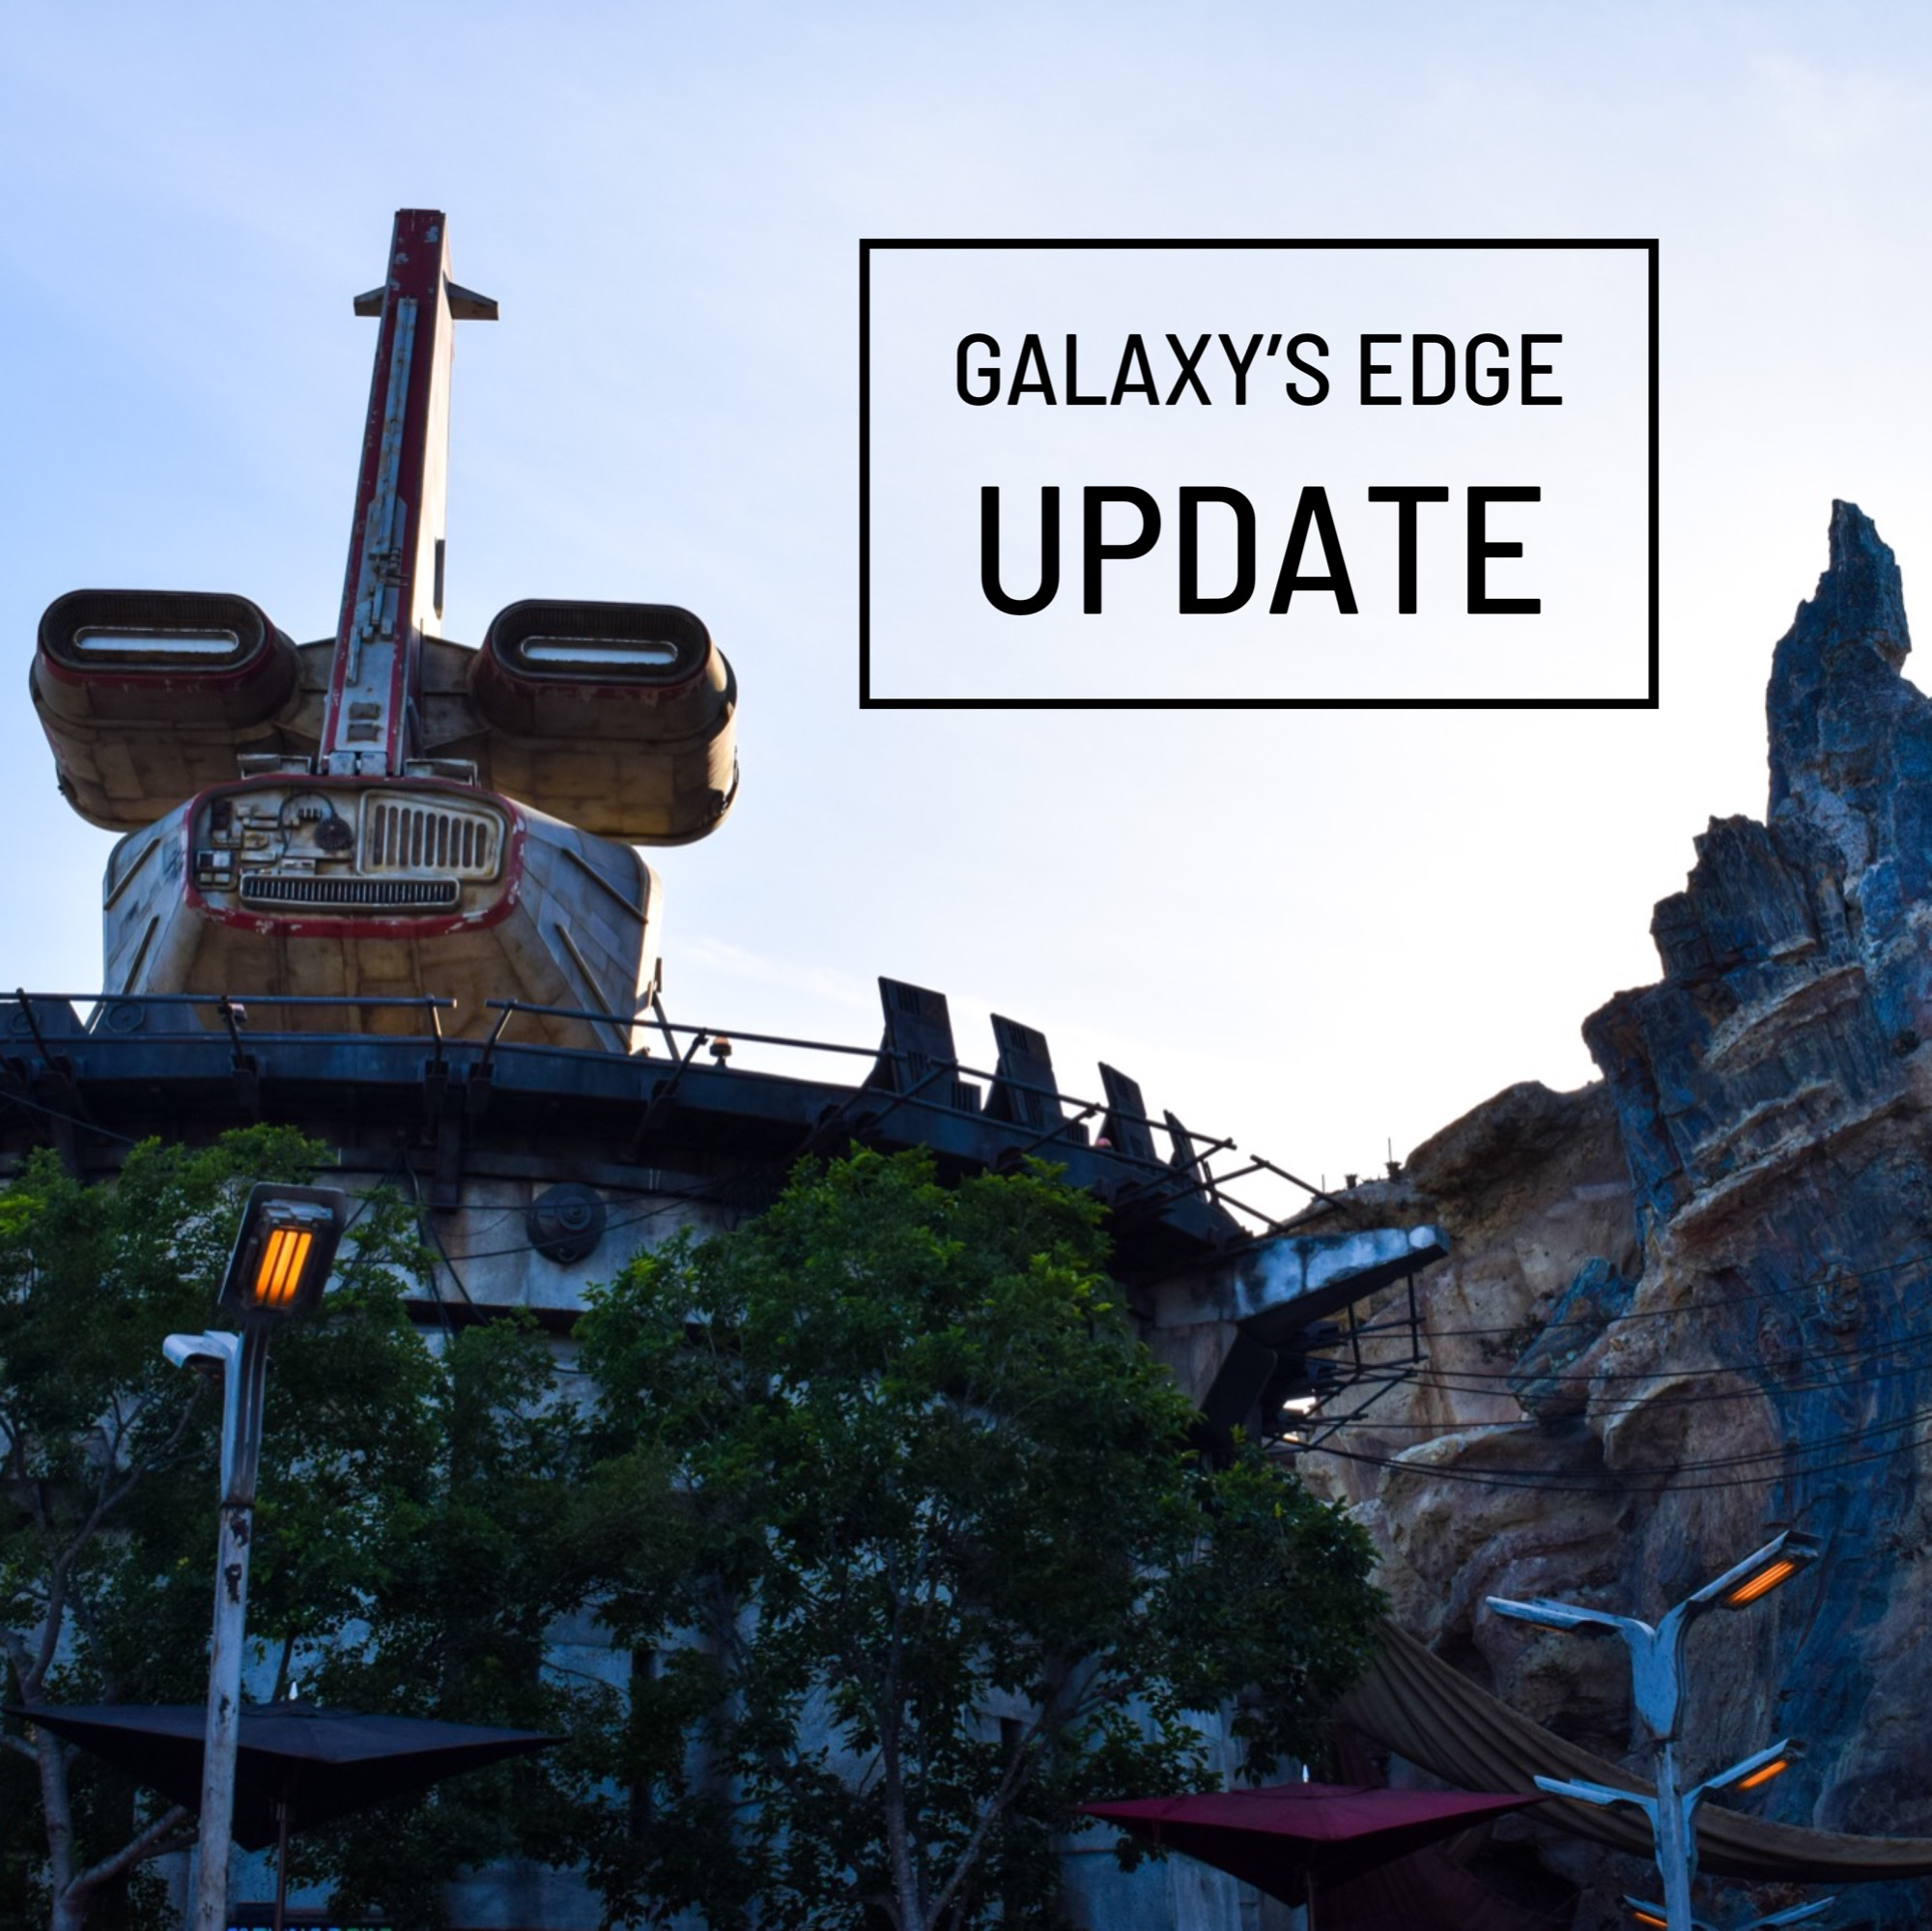 Star Wars: Galaxy's Edge Update - Docking Bay 7 & Oga's Cantina Re-Opening, Legacy Lightsaber Stock, and more!